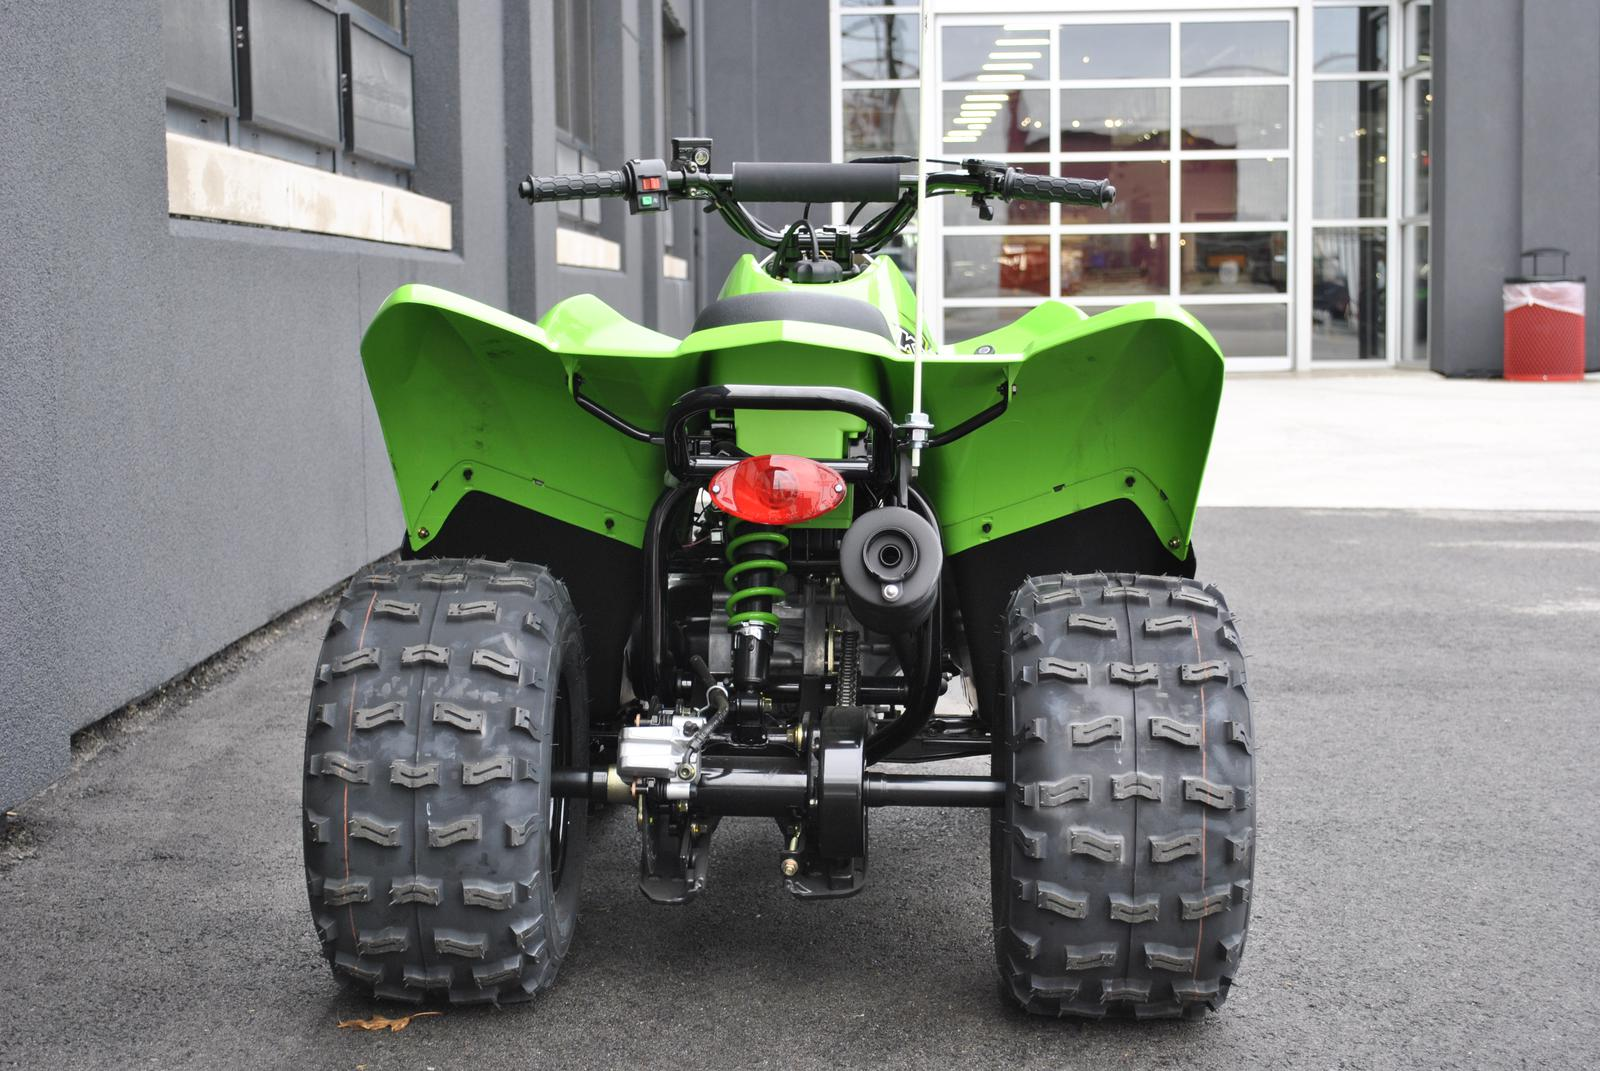 ... manual Array - 2017 kawasaki kfx 90 for sale in indianapolis in flat  out rh flatoutmotorcycles com